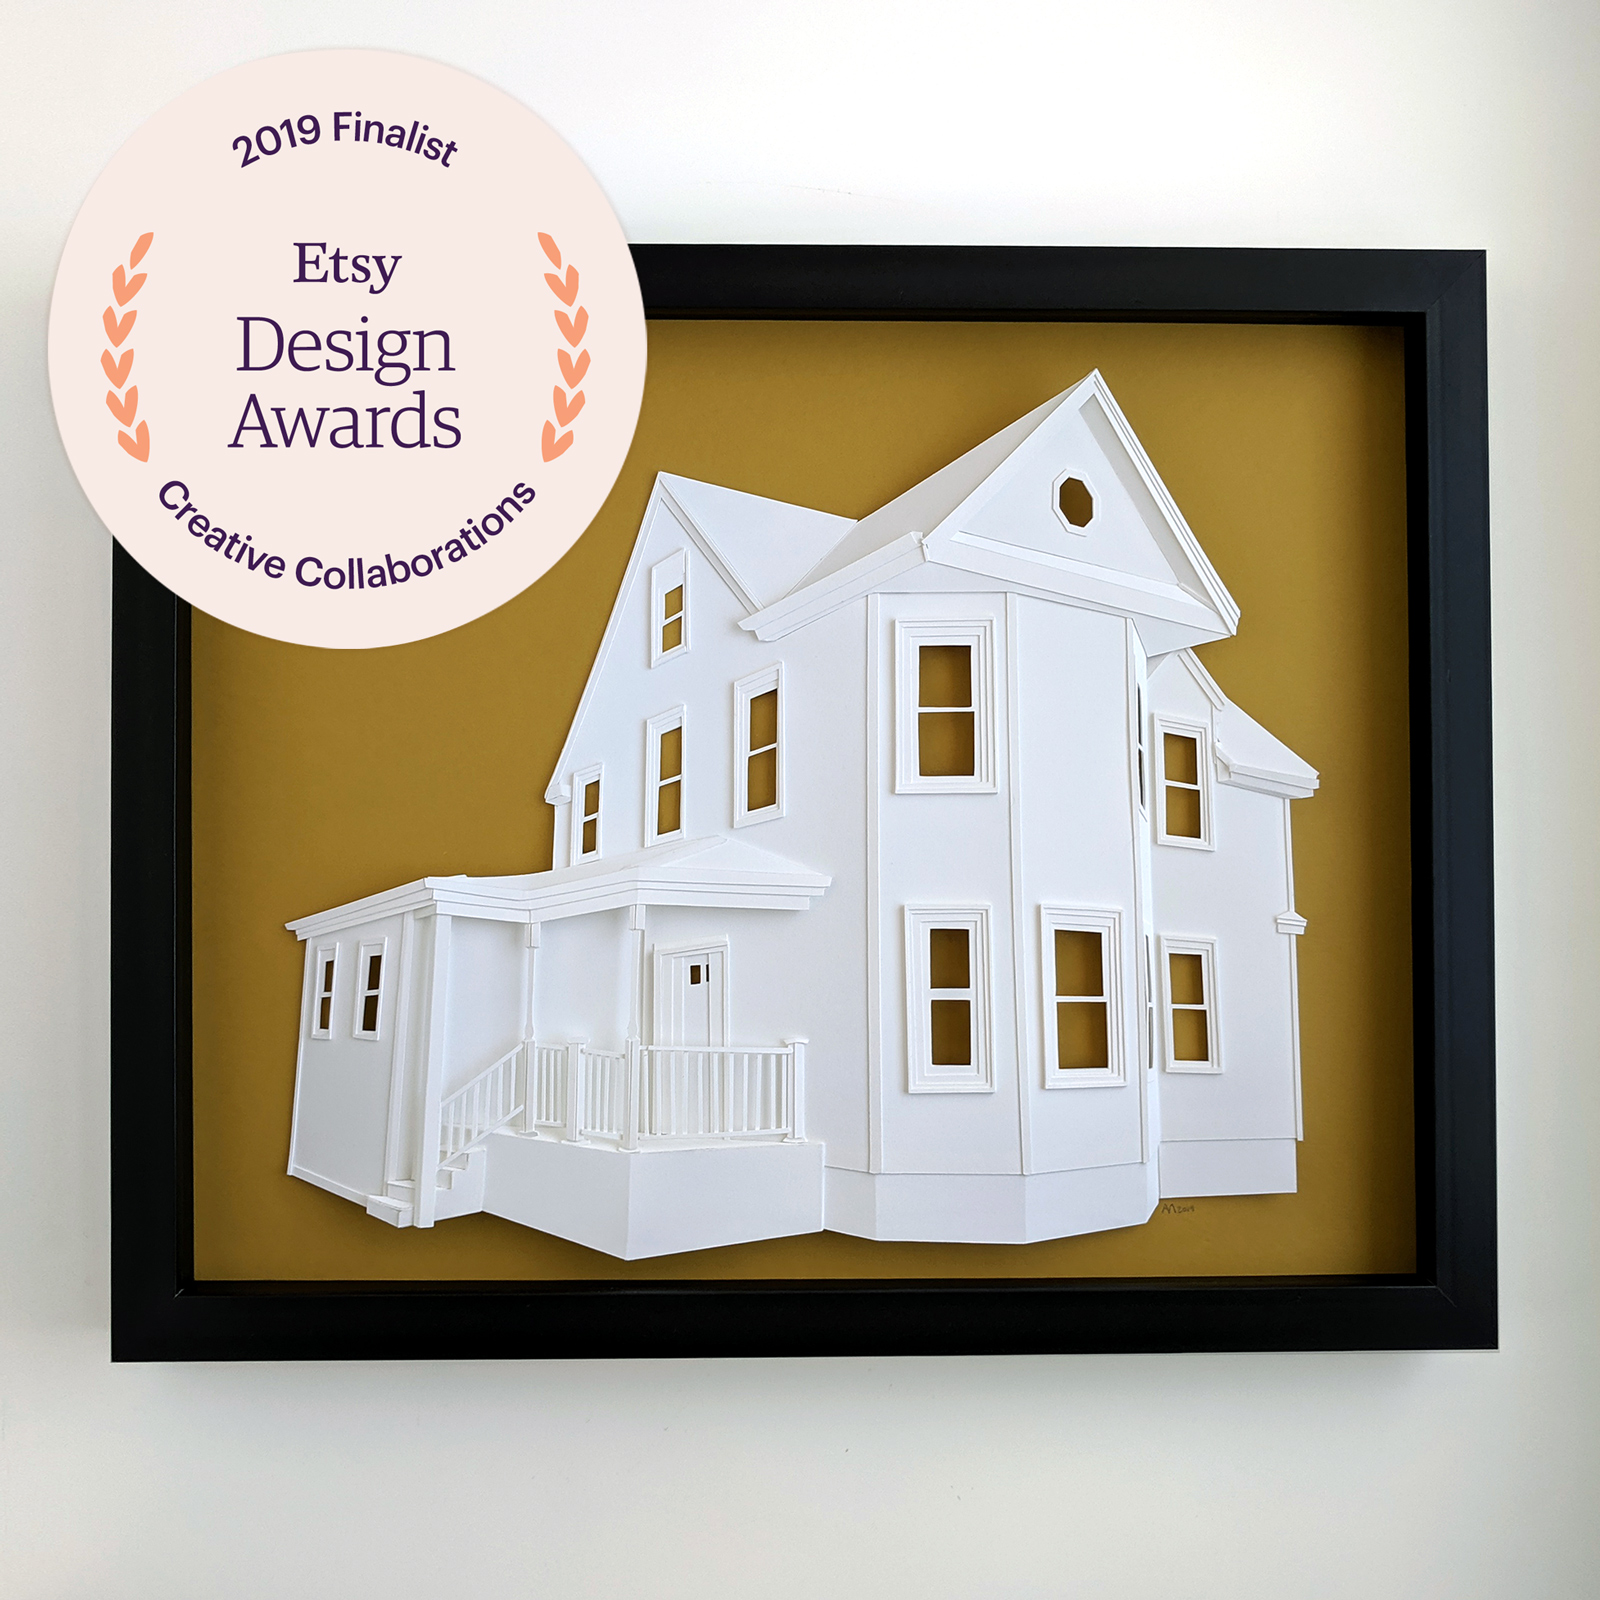 Custom house portrait made of paper depicting a large house with a deep front porch, overlaid with the Etsy Design Awards Creative Collaborations Finalist logo